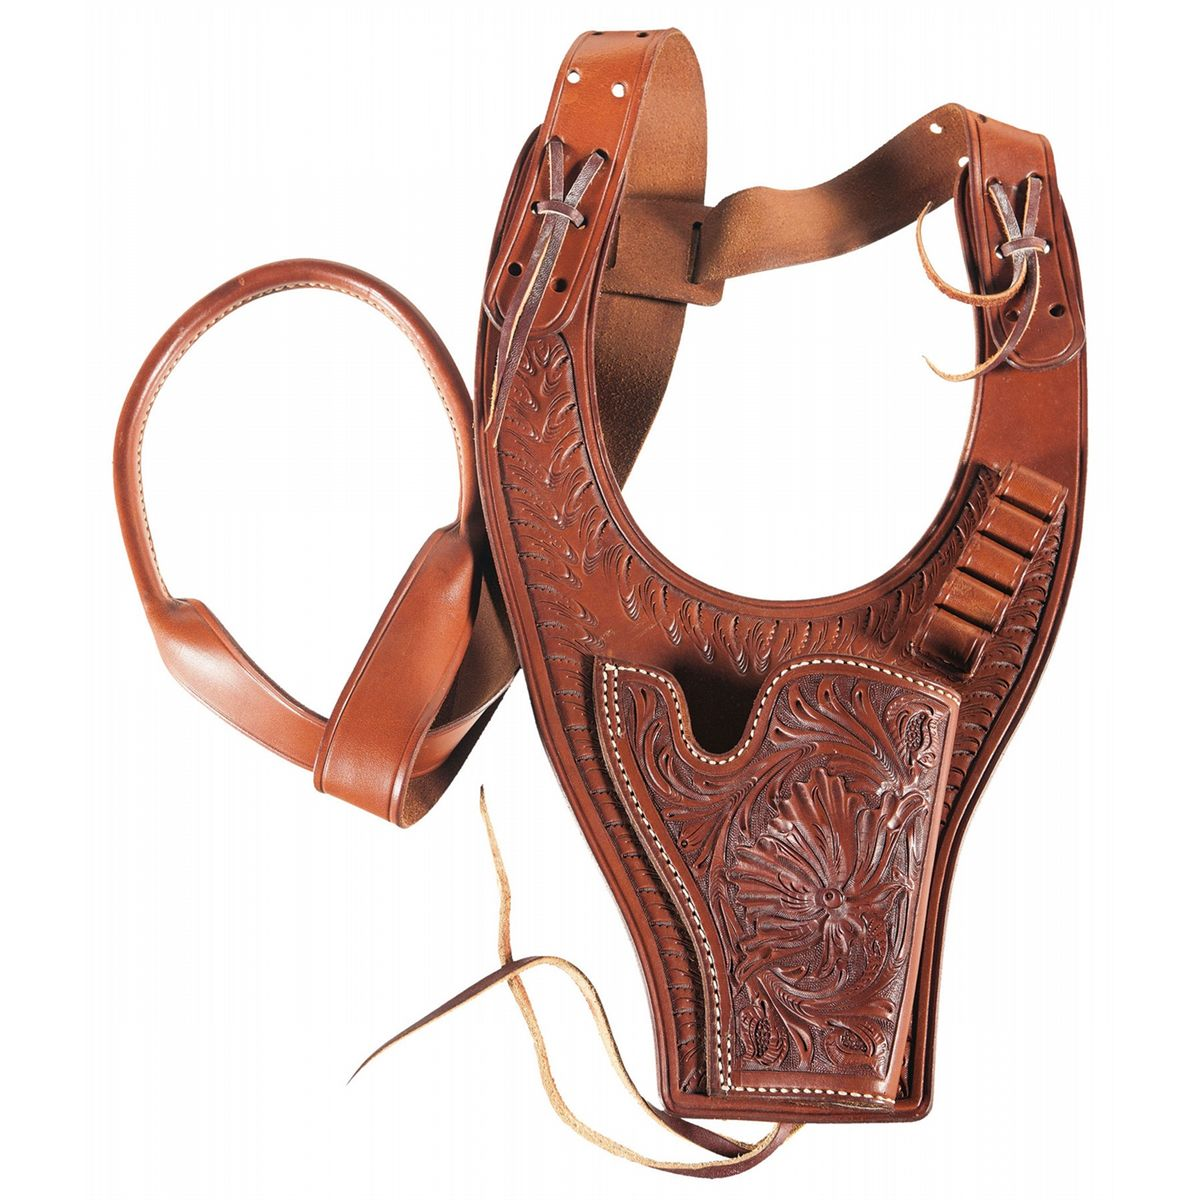 Colt Third Generation Single Action Army Sheriff's Model with Extra  Cylinder and Shoulder Holster